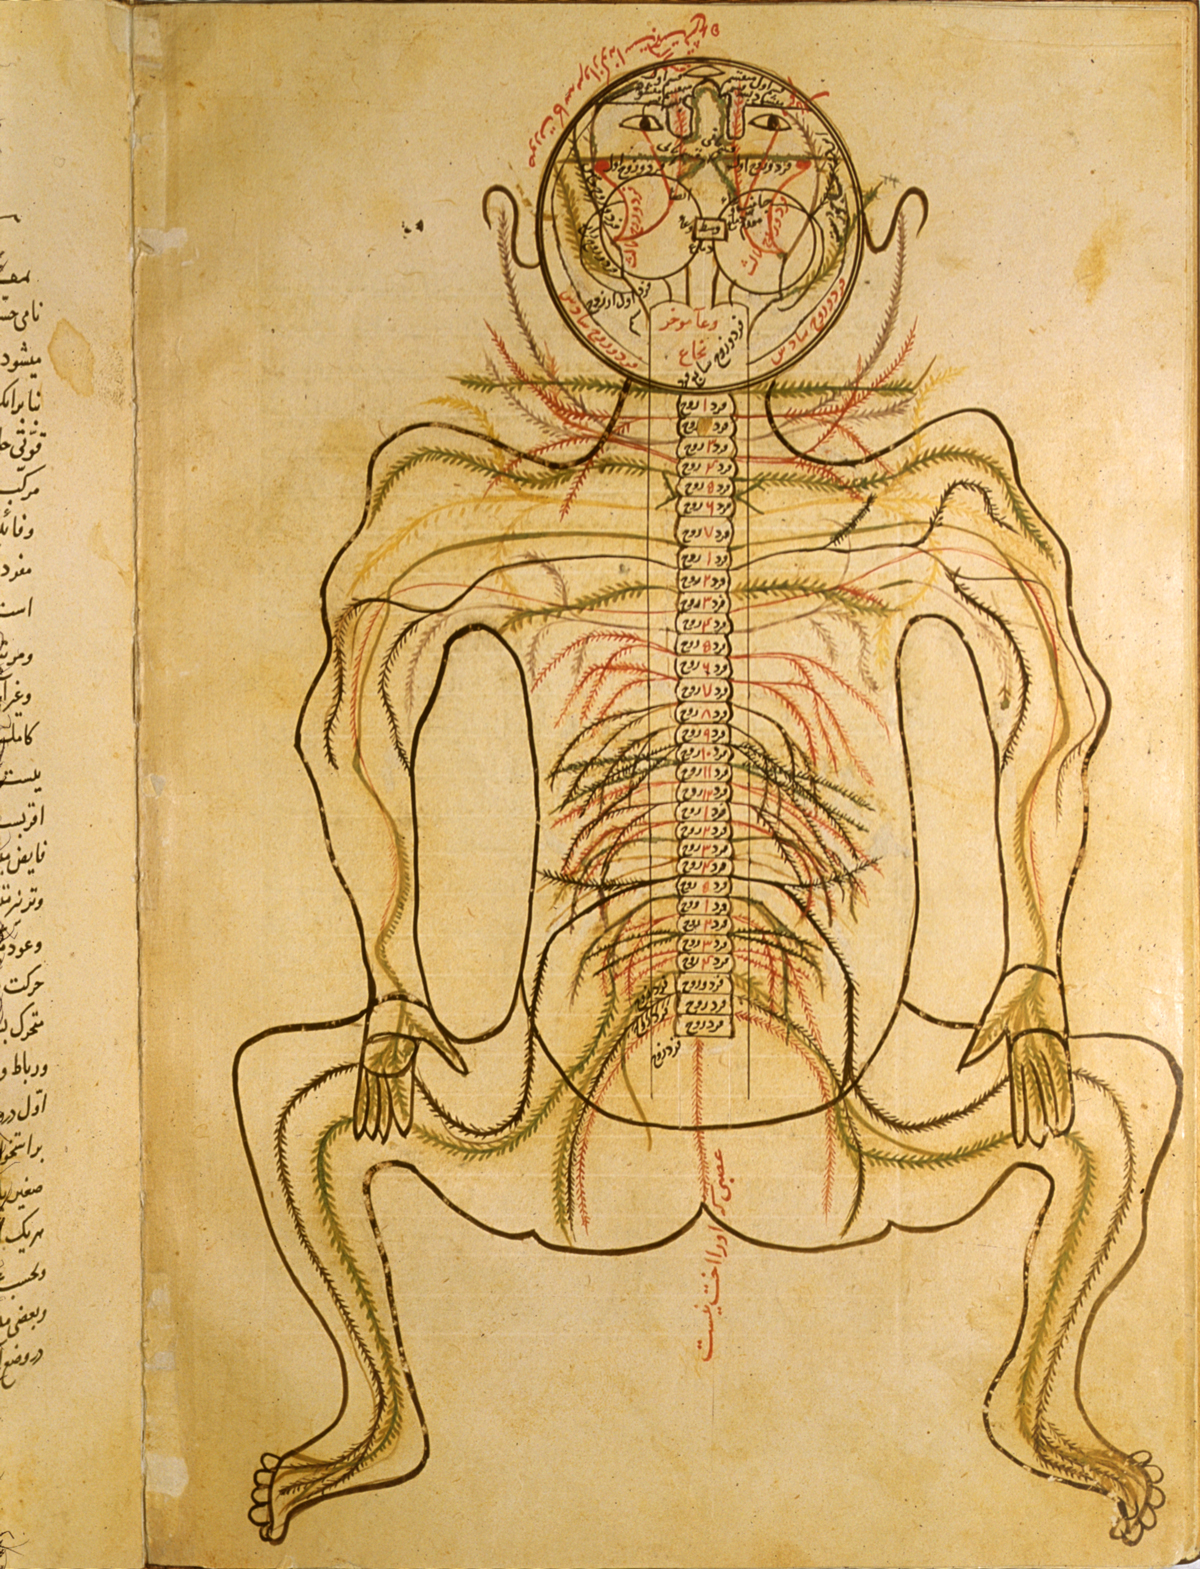 Islamic Medical Manuscripts in the NLM - MS P 19